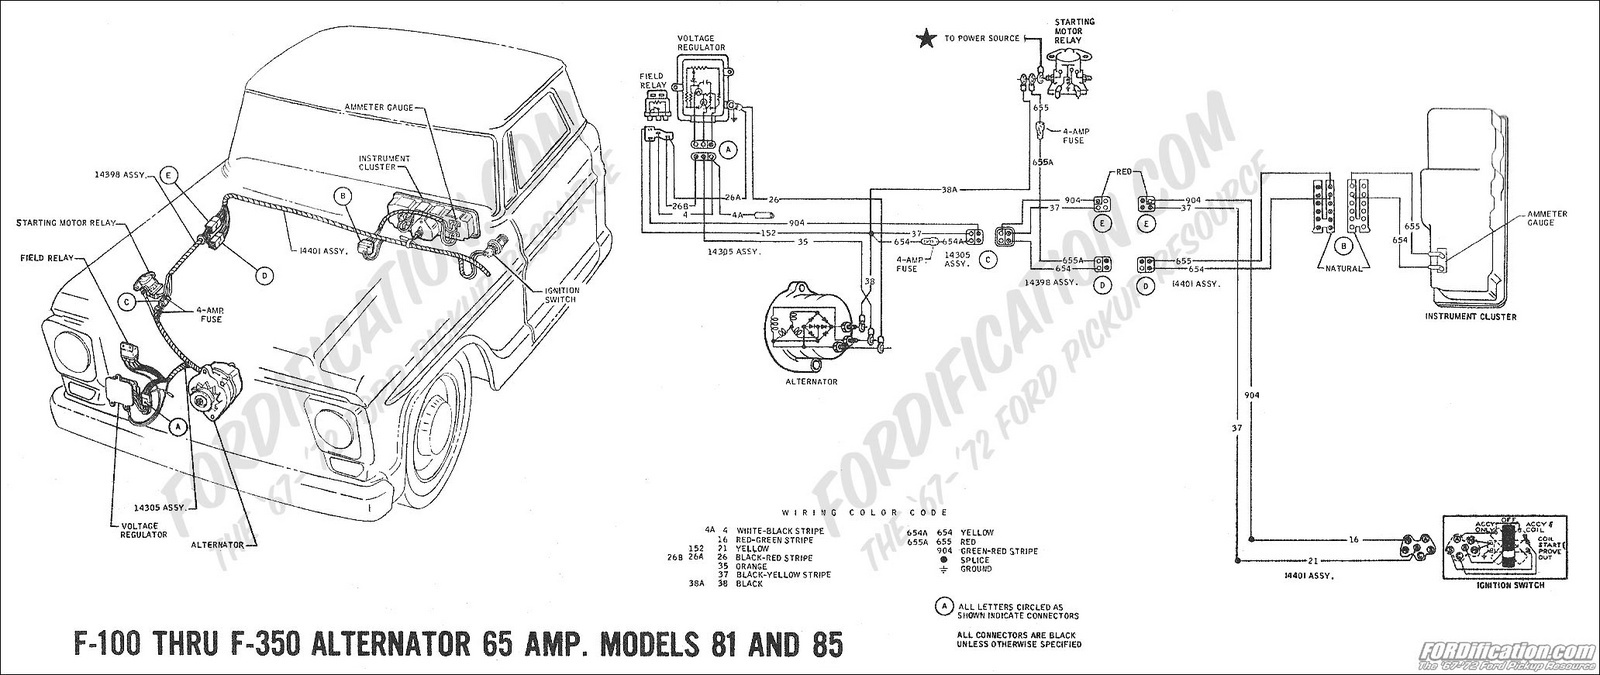 1968 Ford F250 Engine Diagram Worksheet And Wiring F 250 460 Truck Dist Experts Of U2022 Rh Evilcloud Co Uk 2003 60 2005 Expedition